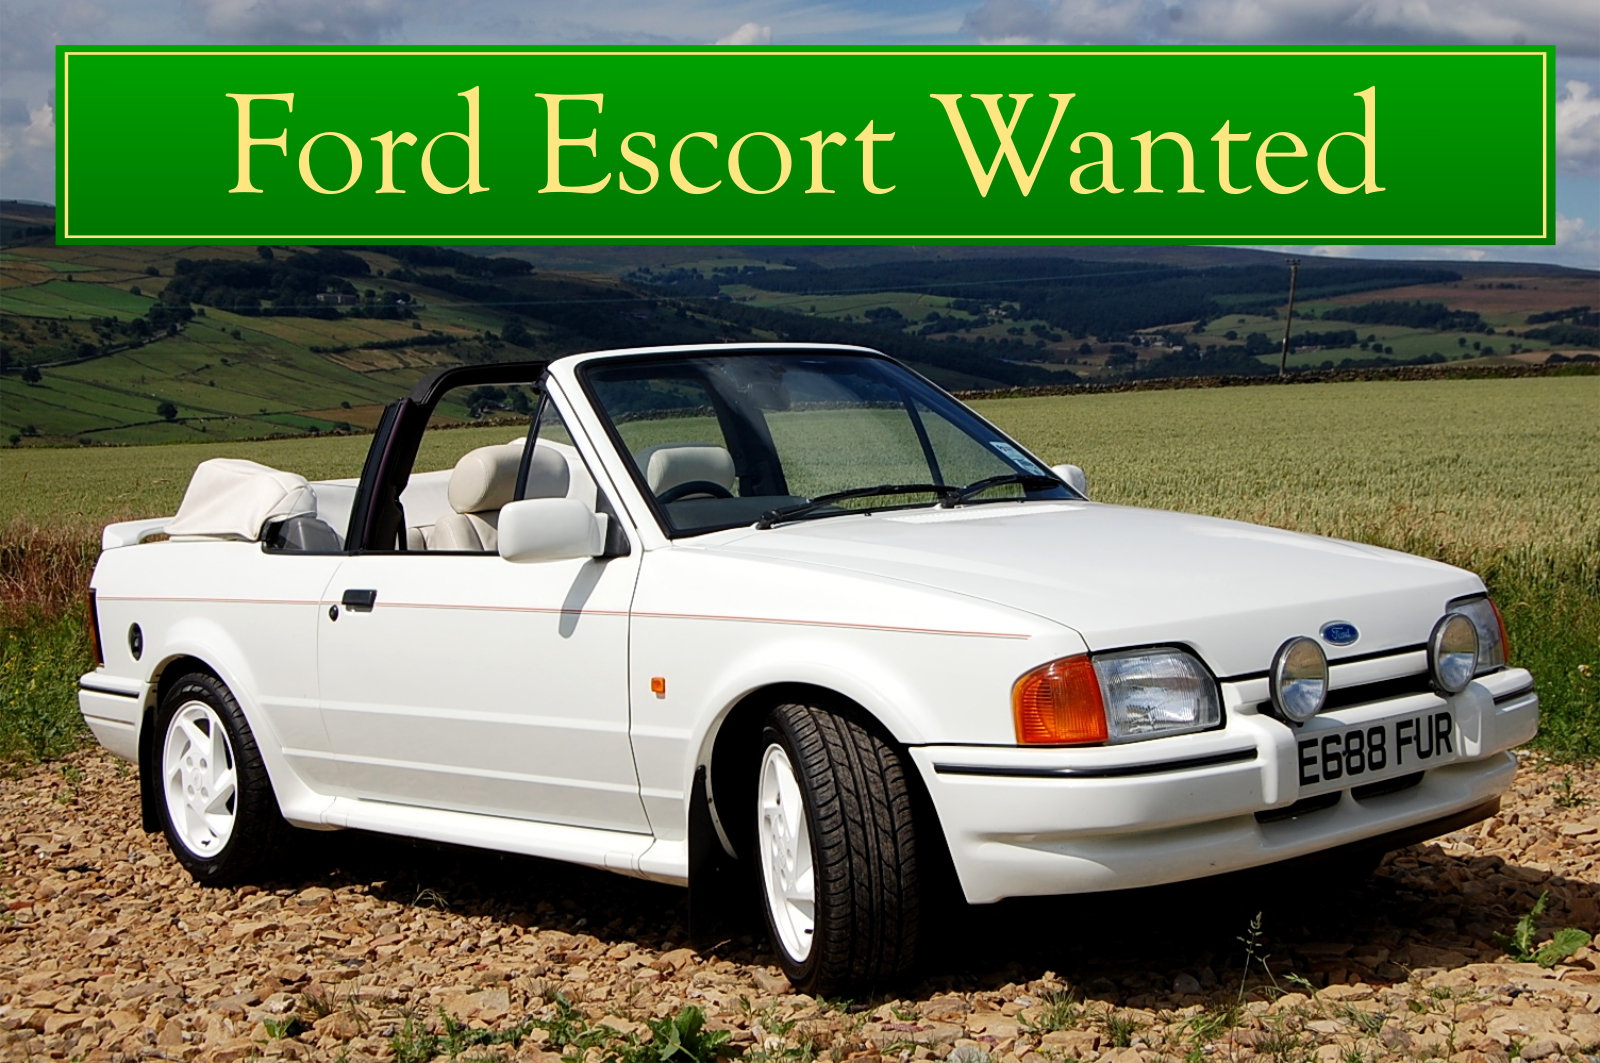 FORD COSWORTH WANTED, CLASSIC CARS WANTED, IMMEDIATE PAYMENT Wanted (picture 2 of 6)